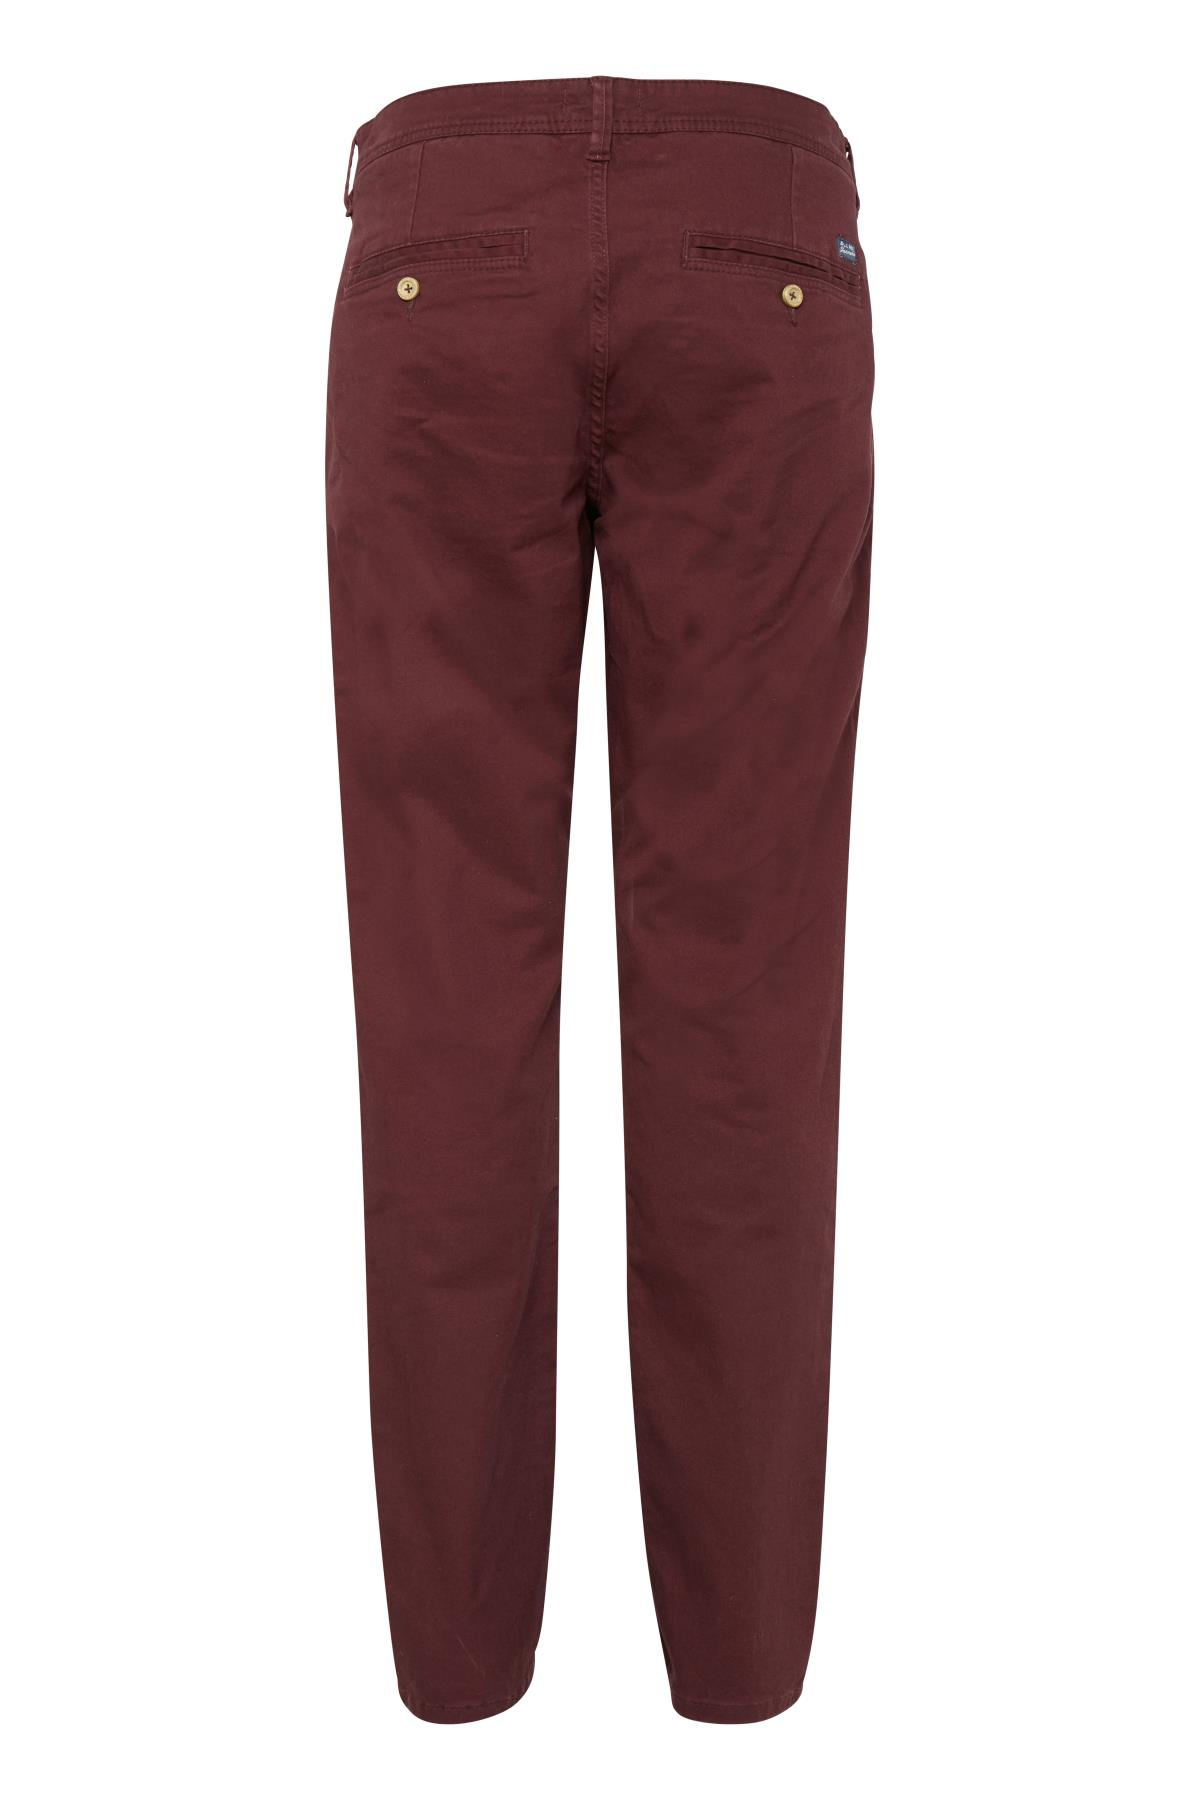 Wine red Pants Casual – Køb Wine red Pants Casual fra str. 28-38 her